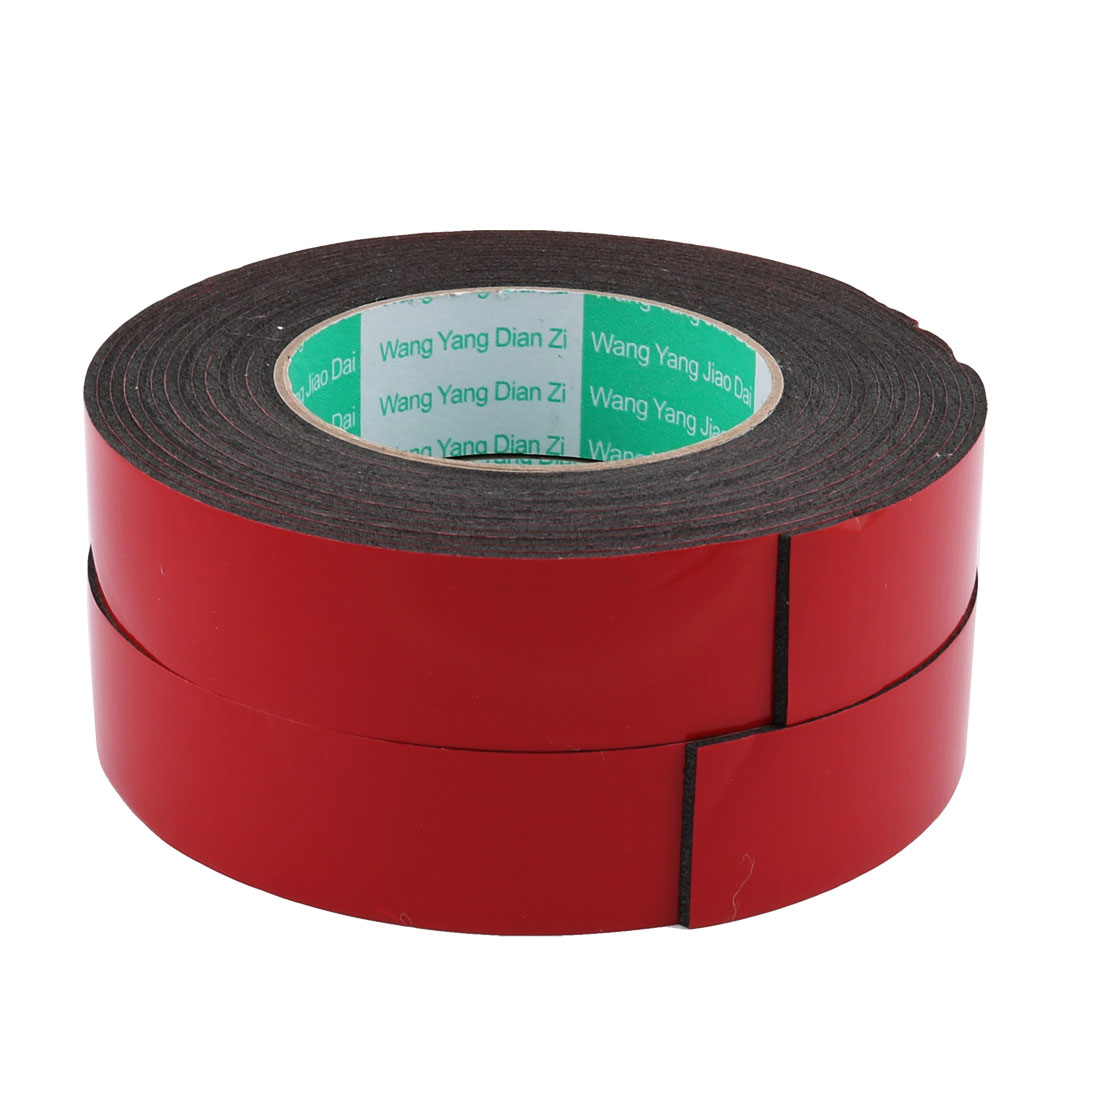 2pcs 30mm x 2mm Double Sided Sponge Tape Adhesive Sticker Shockproof Tape 5M